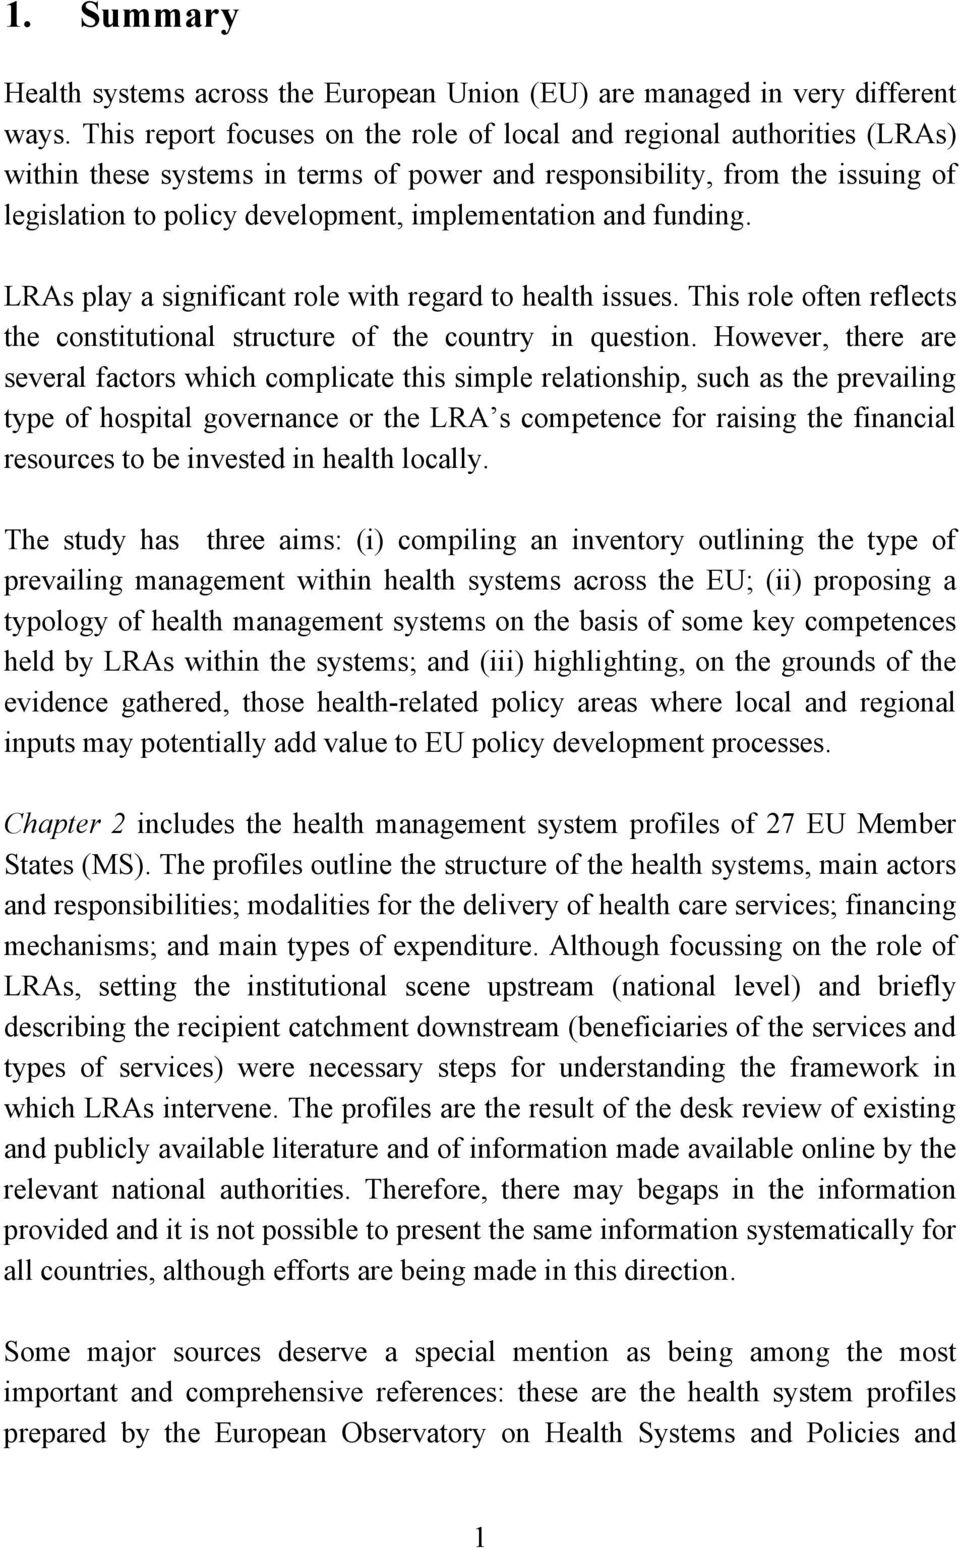 implementation and funding. LRAs play a significant role with regard to health issues. This role often reflects the constitutional structure of the country in question.